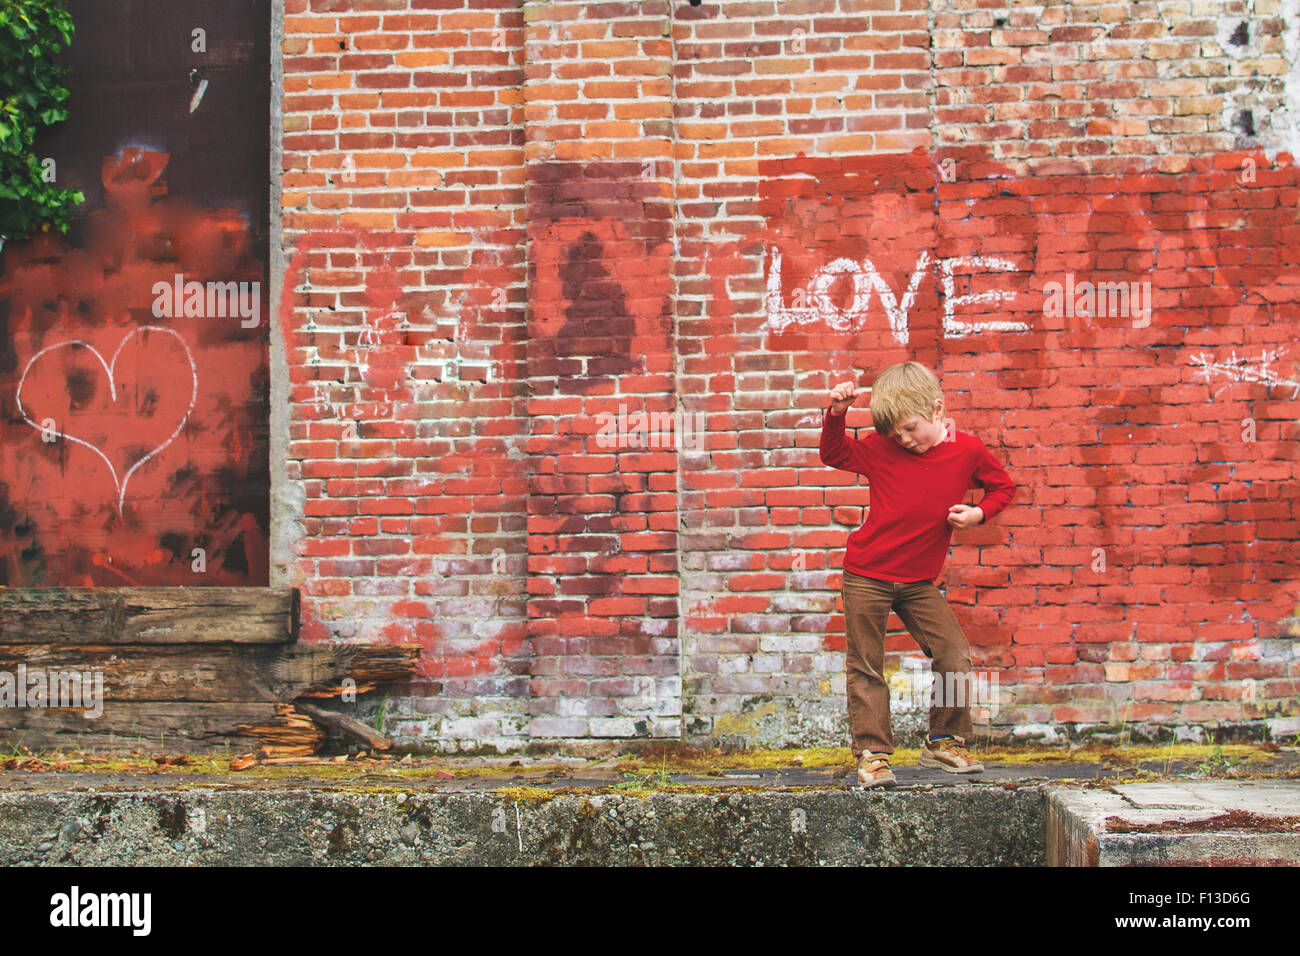 Boy posing in front of wall with graffiti - Stock Image